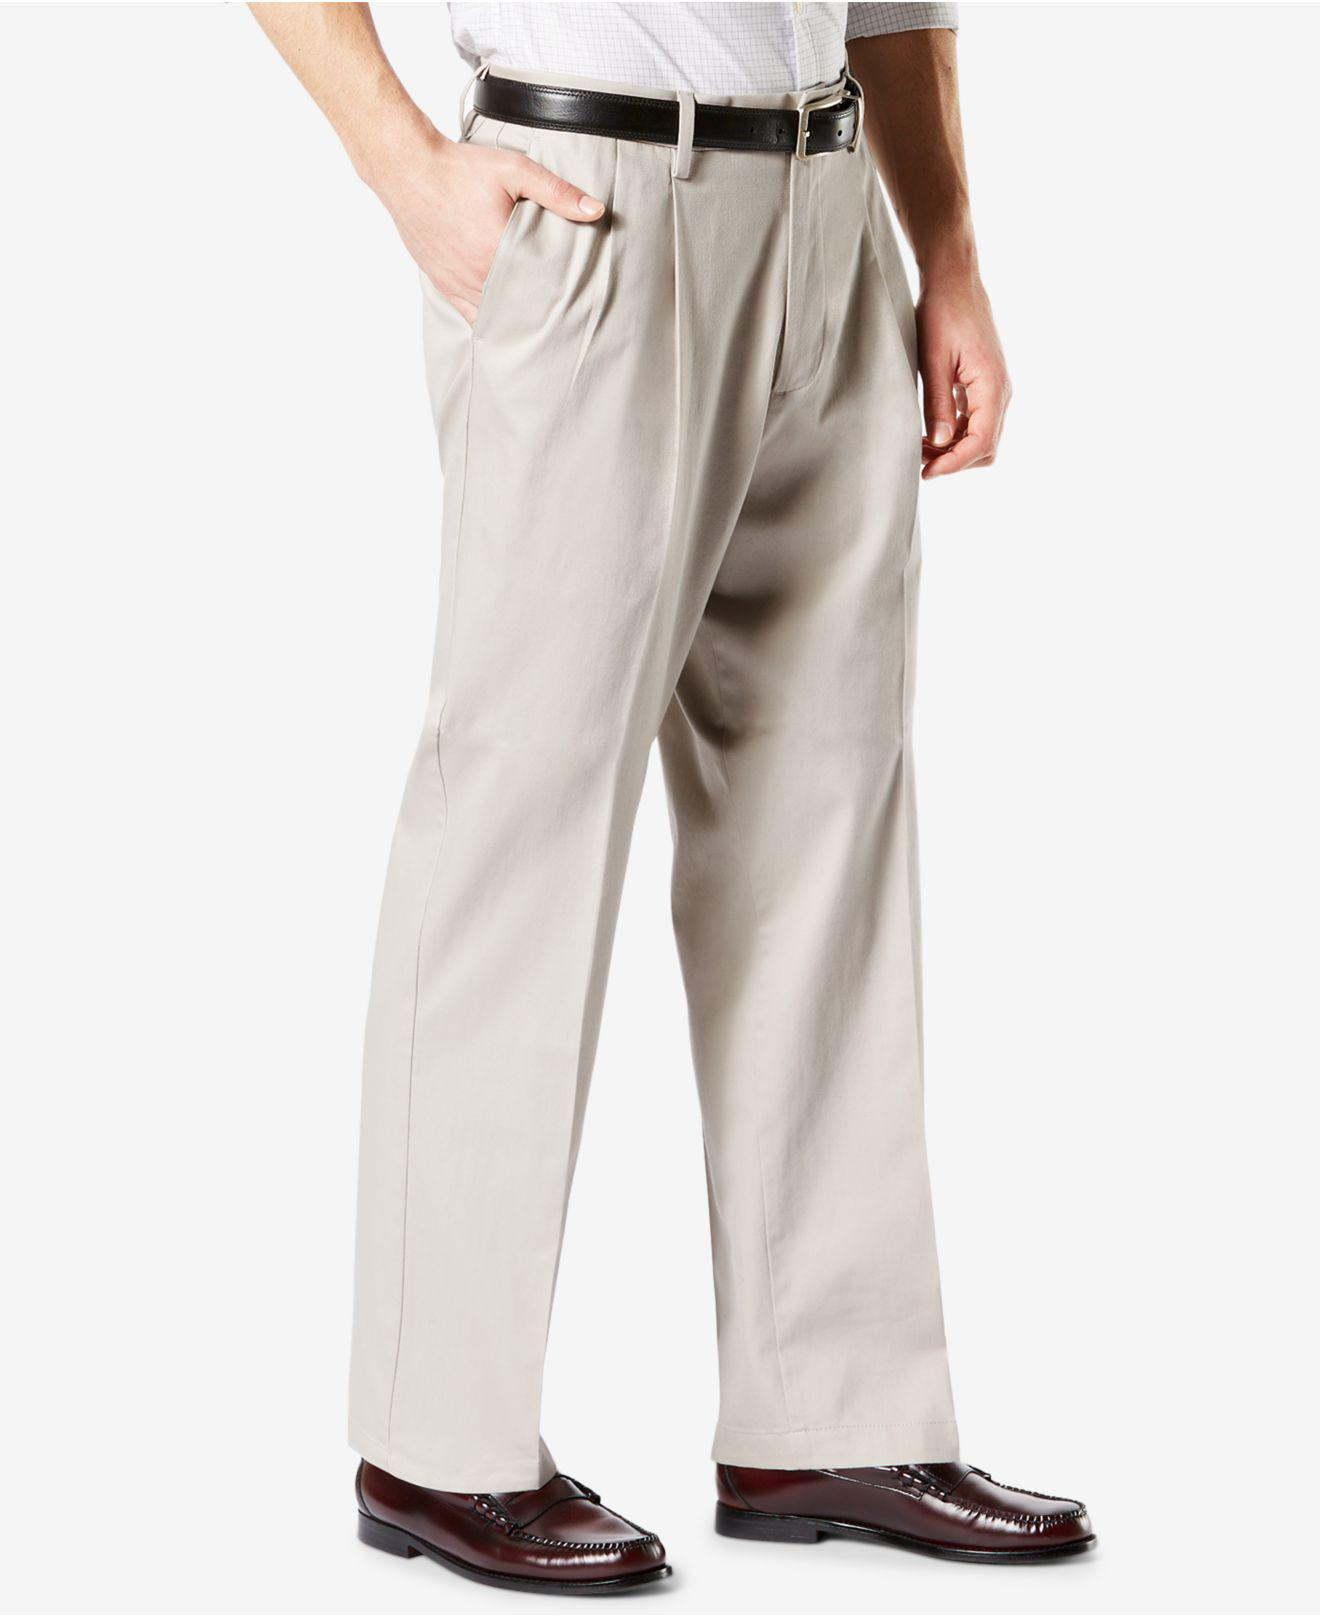 5dfe72b991f Lyst - Dockers ® Signature Lux Cotton Relaxed Fit Pleated Khaki Stretch  Pants D4 in Natural for Men